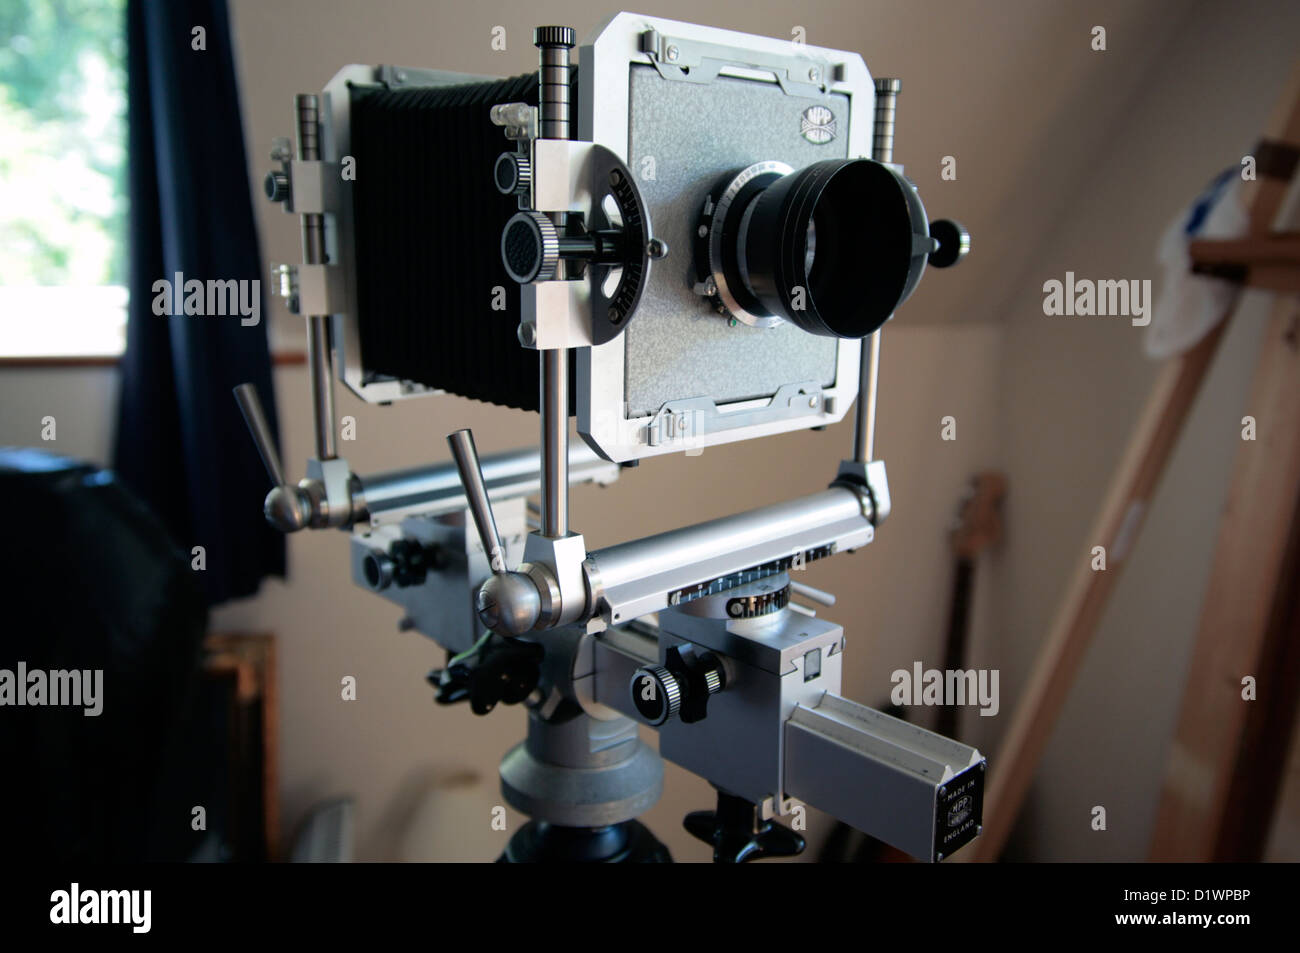 A large format film camera on a wooden tripod. - Stock Image